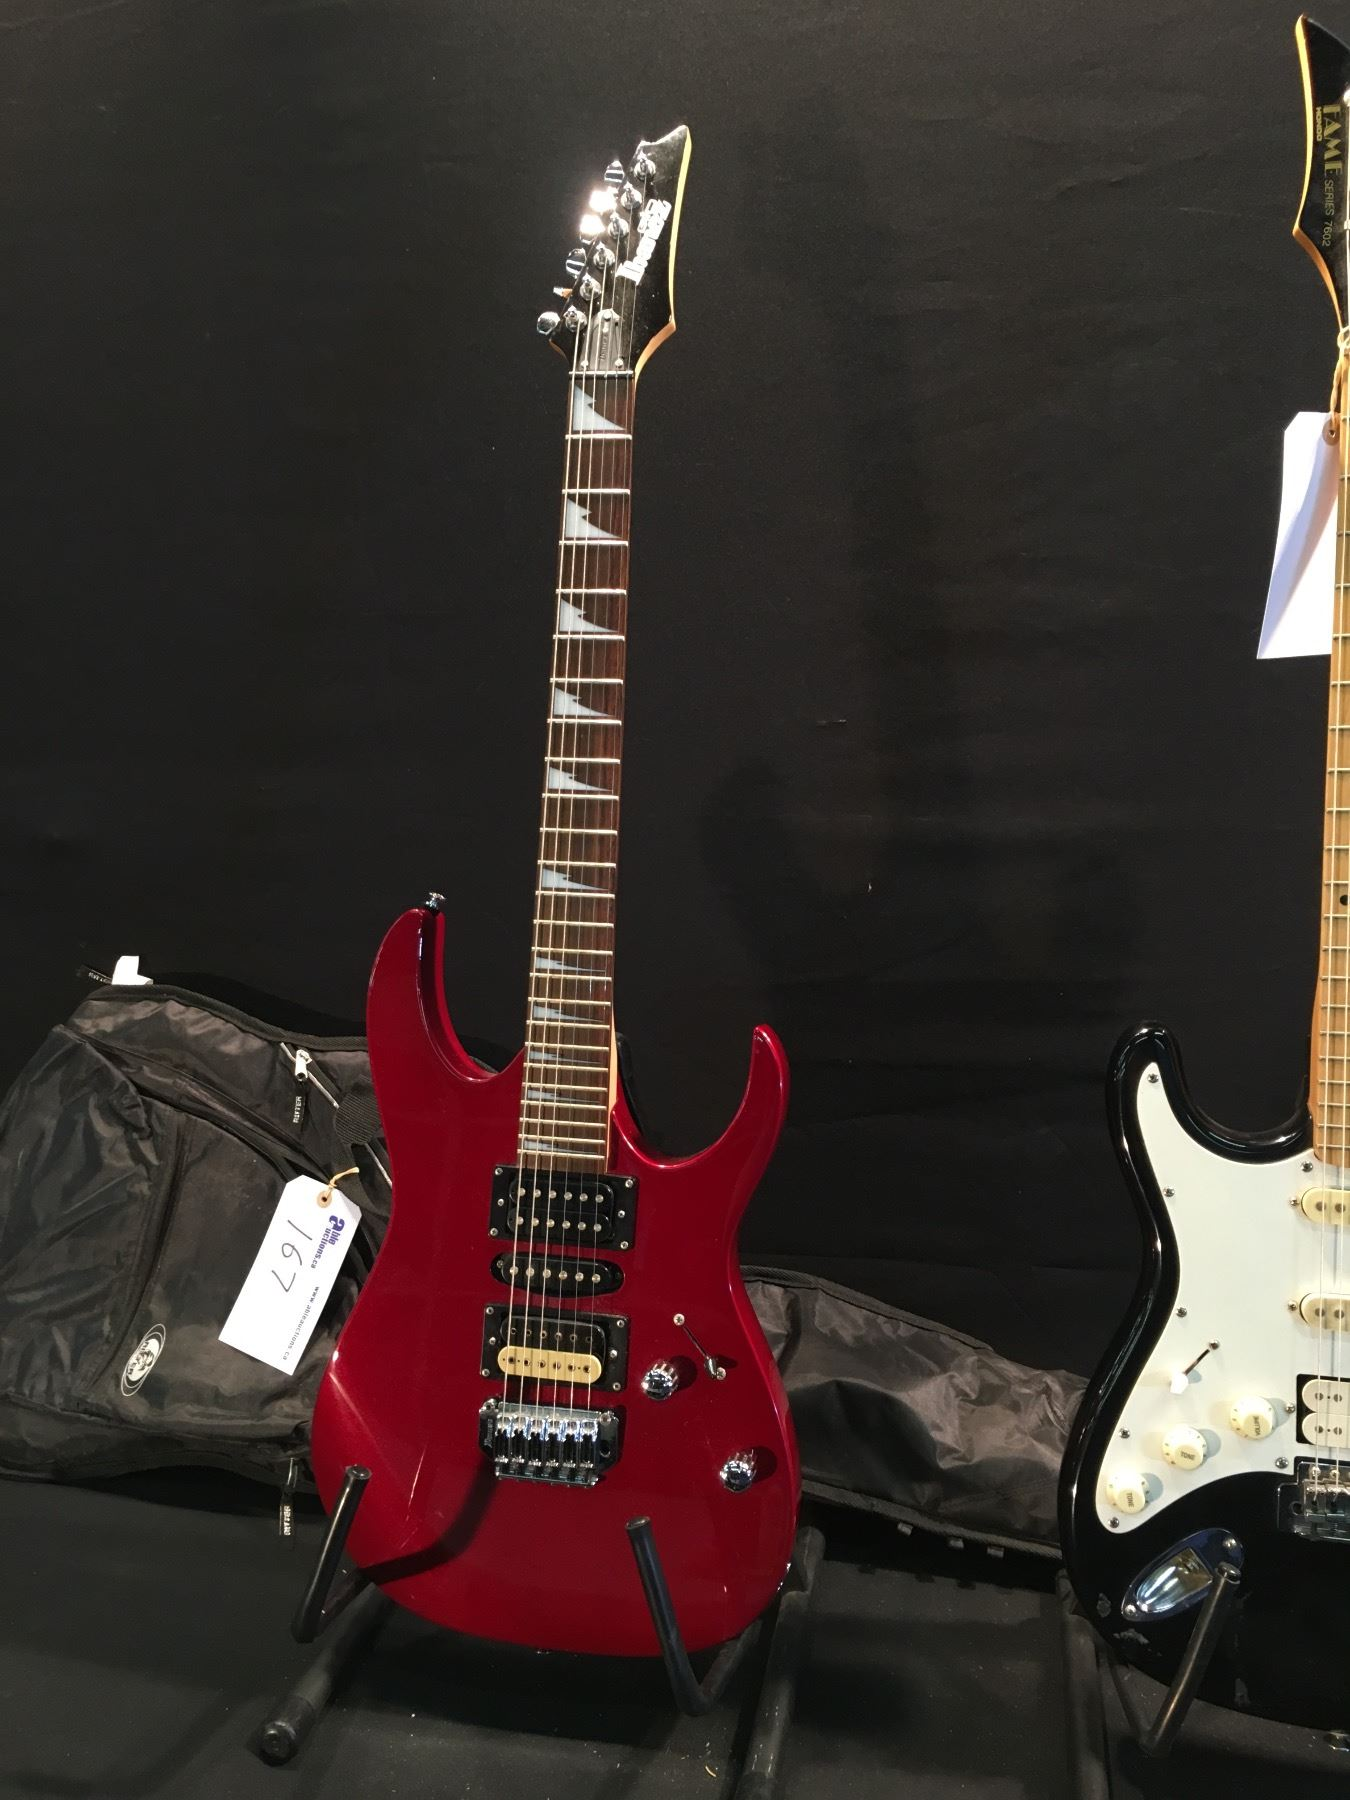 Beautiful Ibanez Rg Wiring Huge Ibanez Wiring Regular Dimarzio Switch Security Diagram Youthful One Humbucker One Volume YellowSolar Panel Wiring 3 GUITARS: IBANEZ GIO LEFT HANDED STRAT STYLE GUITAR WITH TWO ..